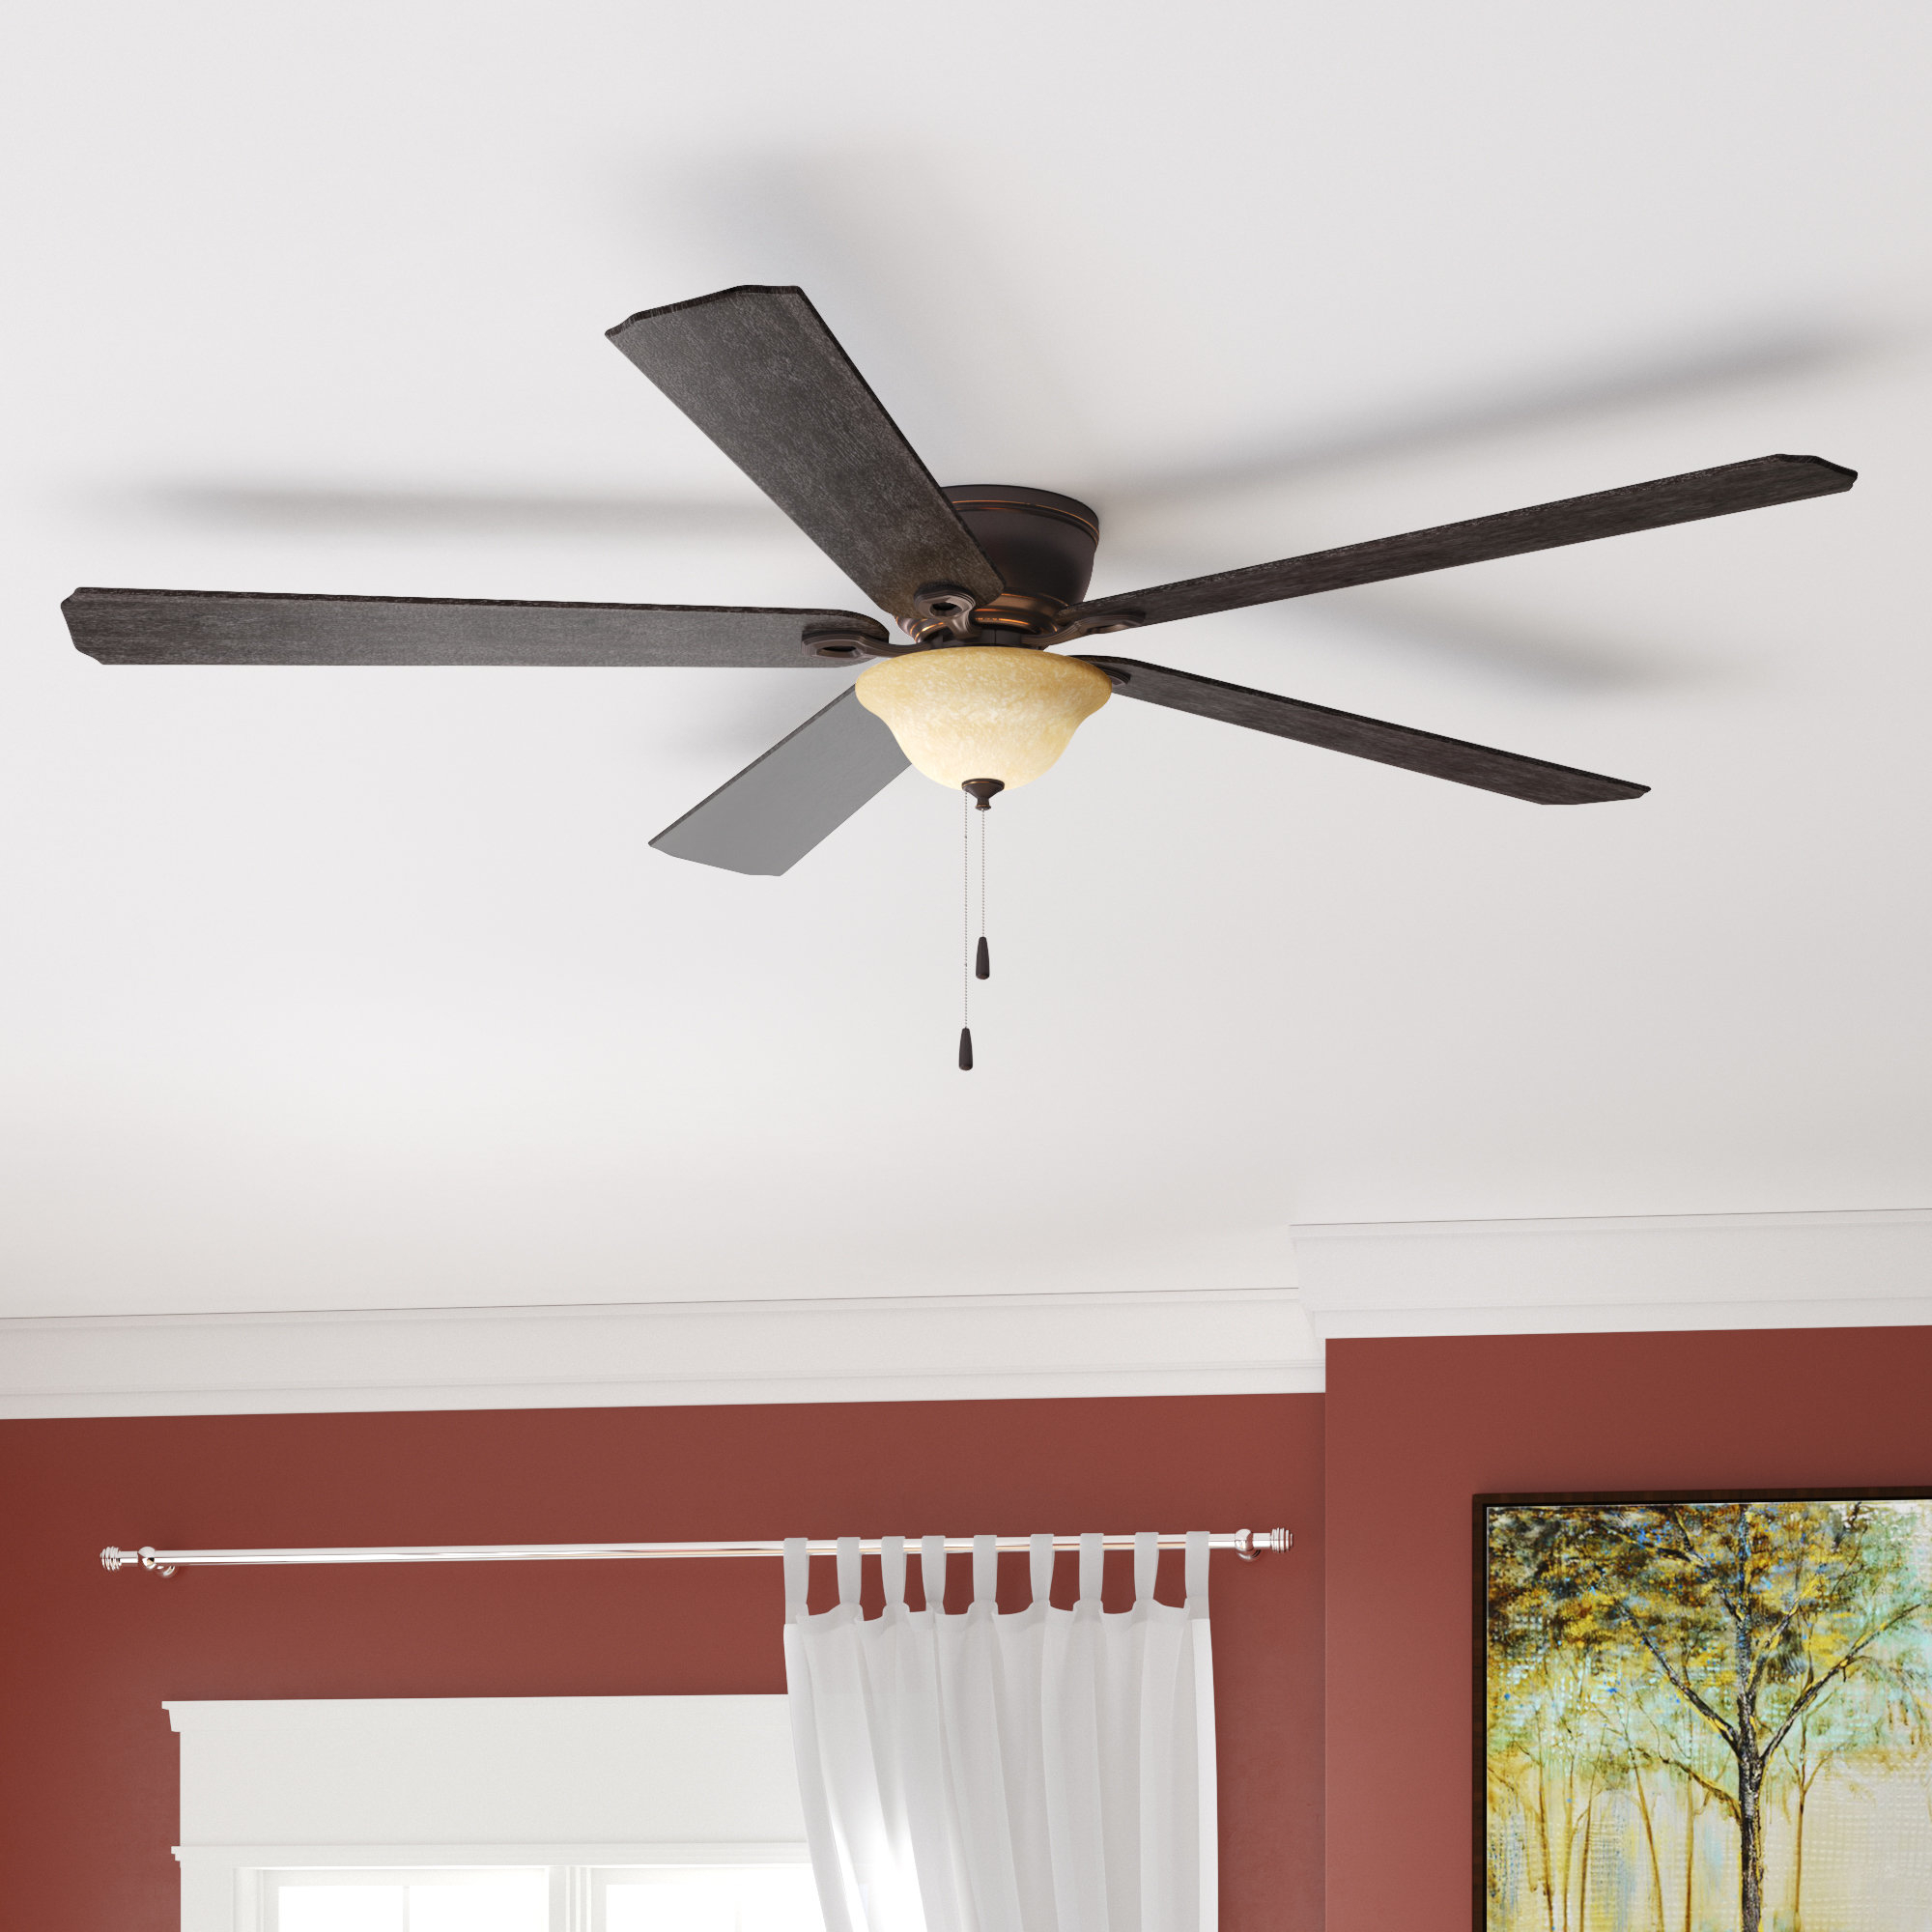 "Well Liked Auden 5 Blade Led Ceiling Fans For 52"" Crumbley 5 Blade Ceiling Fan, Light Kit Included (View 8 of 20)"